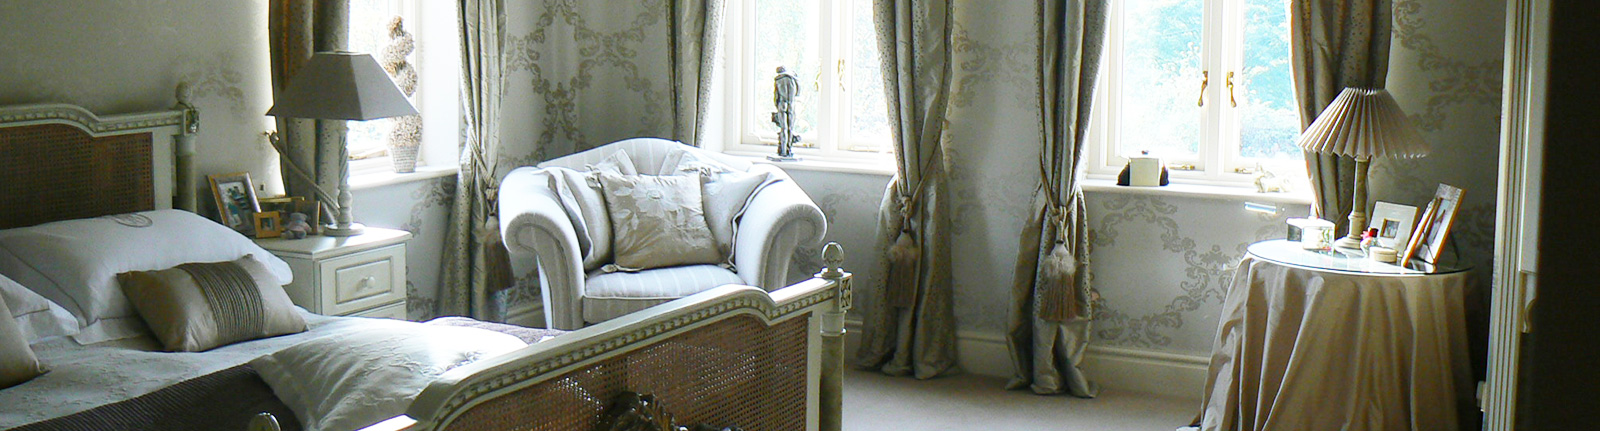 Interior design North East interior design North Yorkshire painting